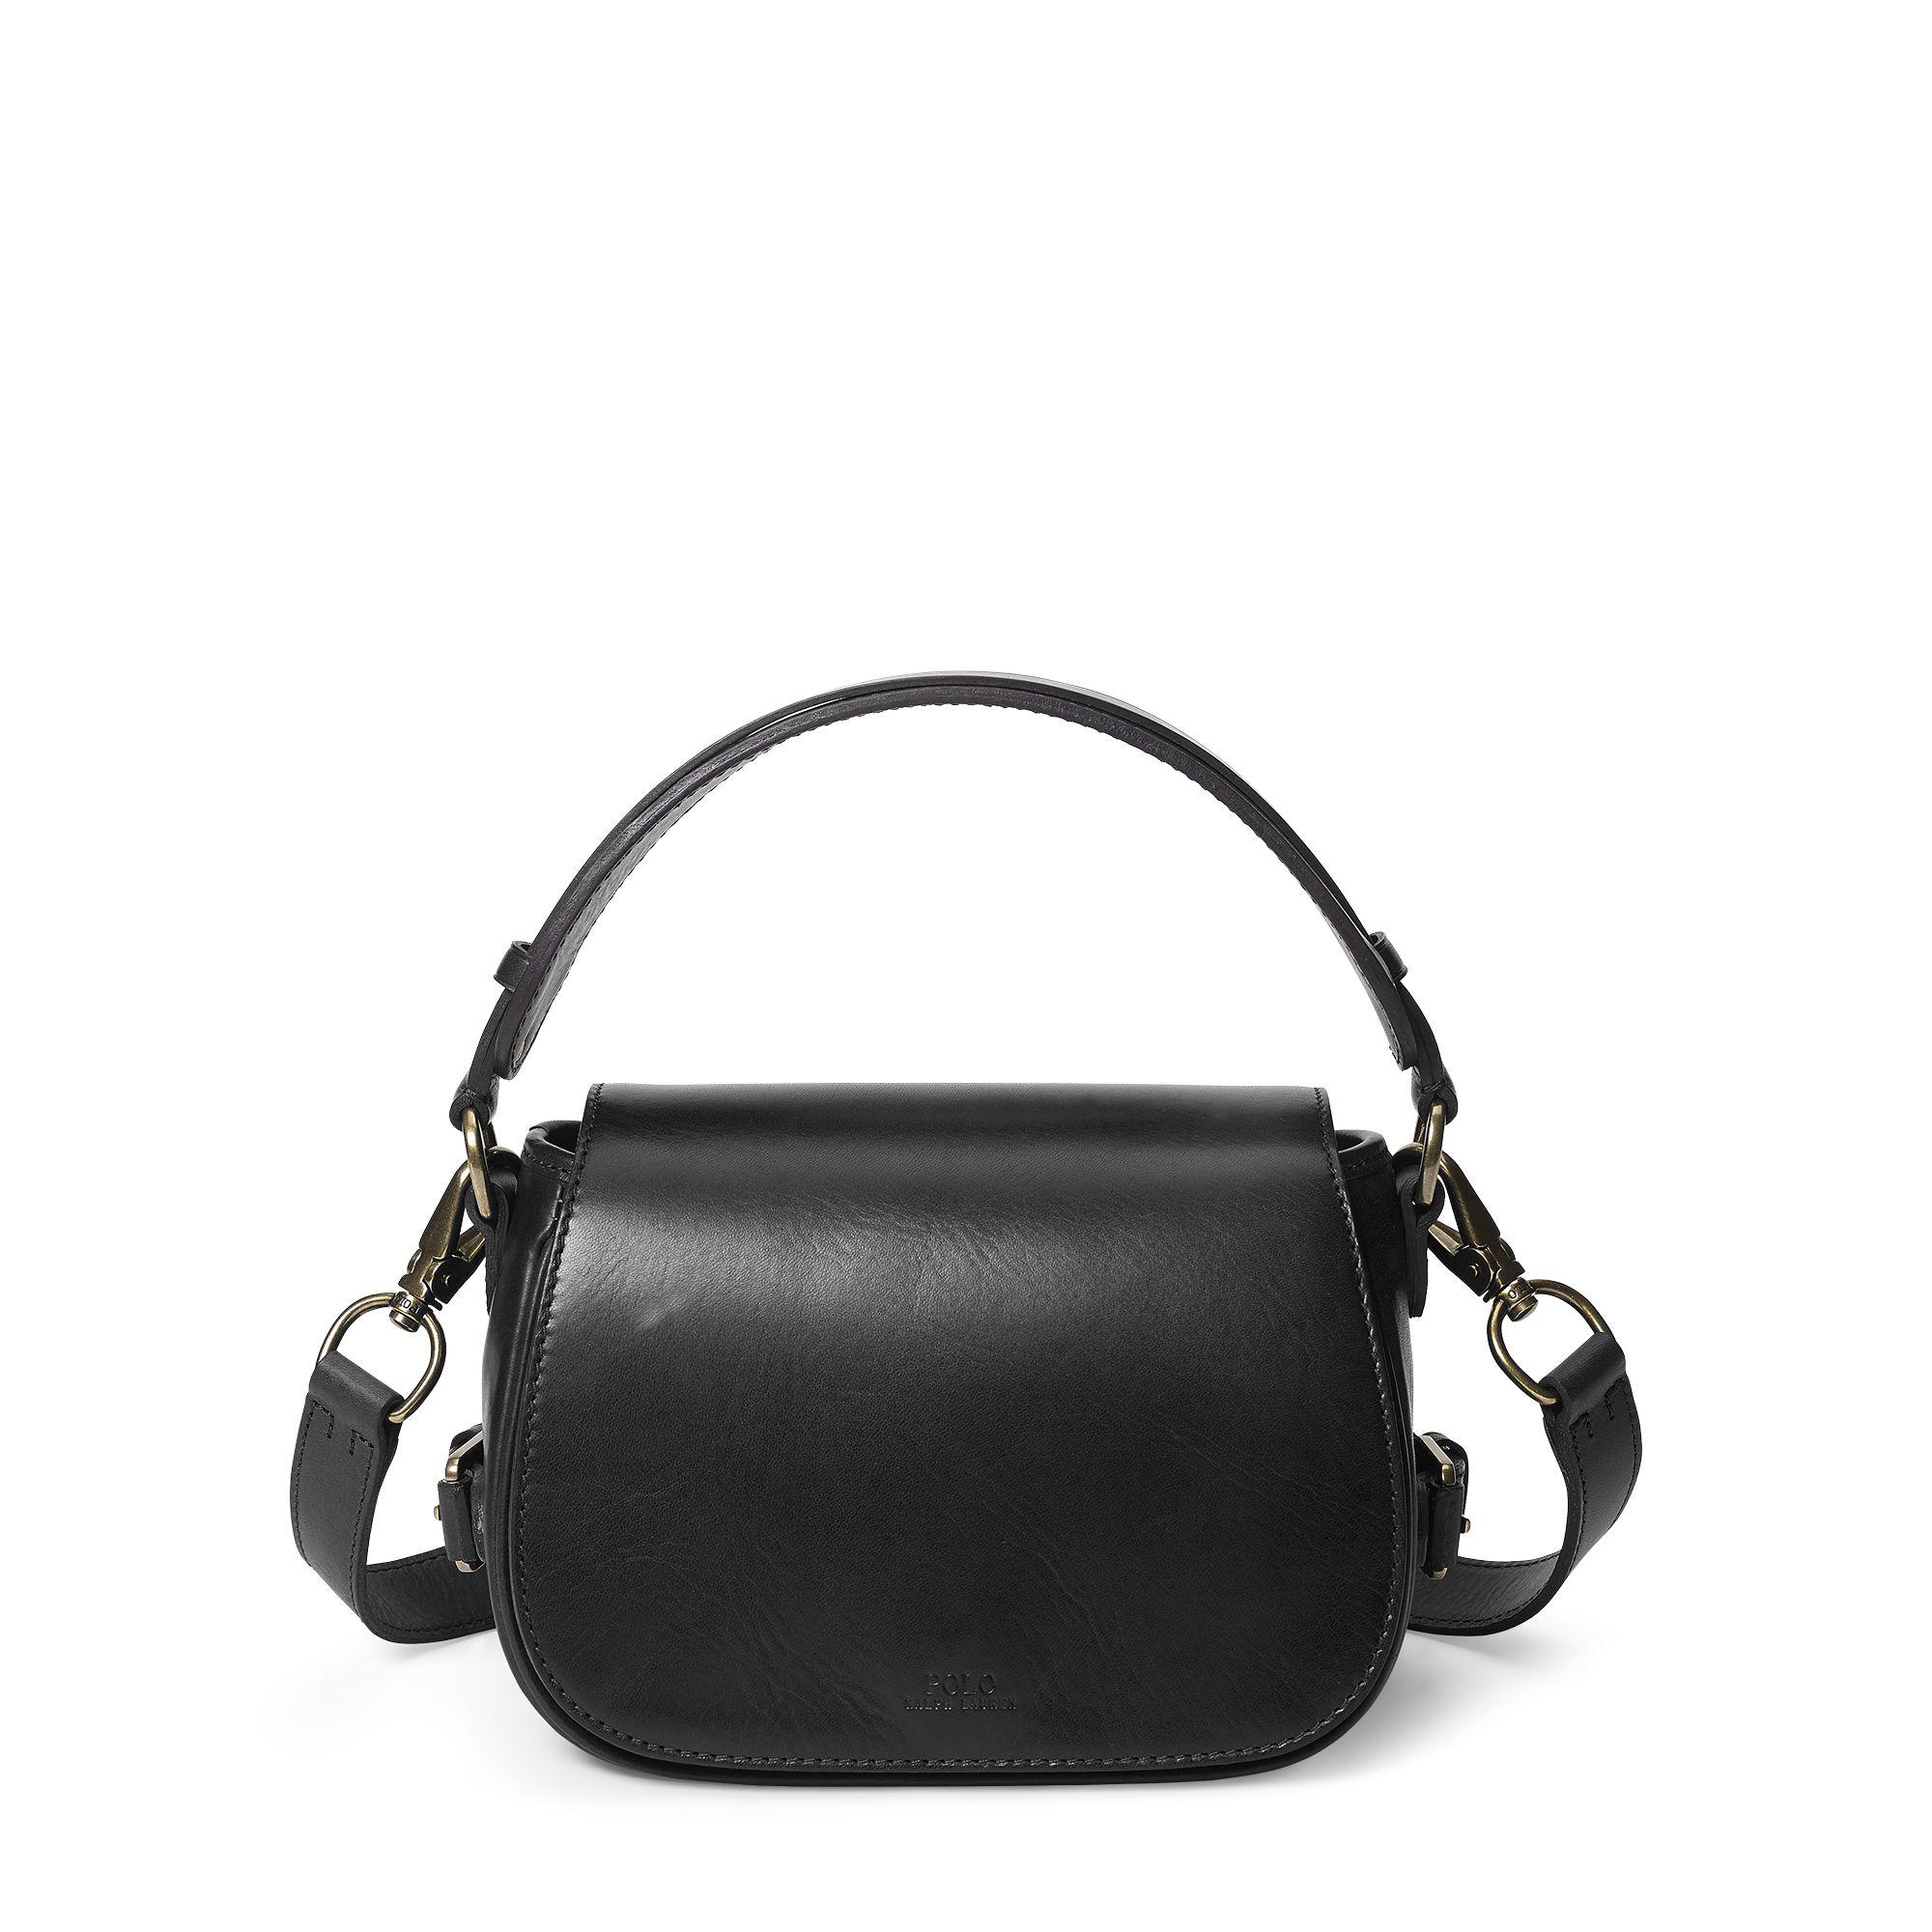 ee007aa008 Polo Ralph Lauren Small Sullivan Saddle Bag in Black - Lyst